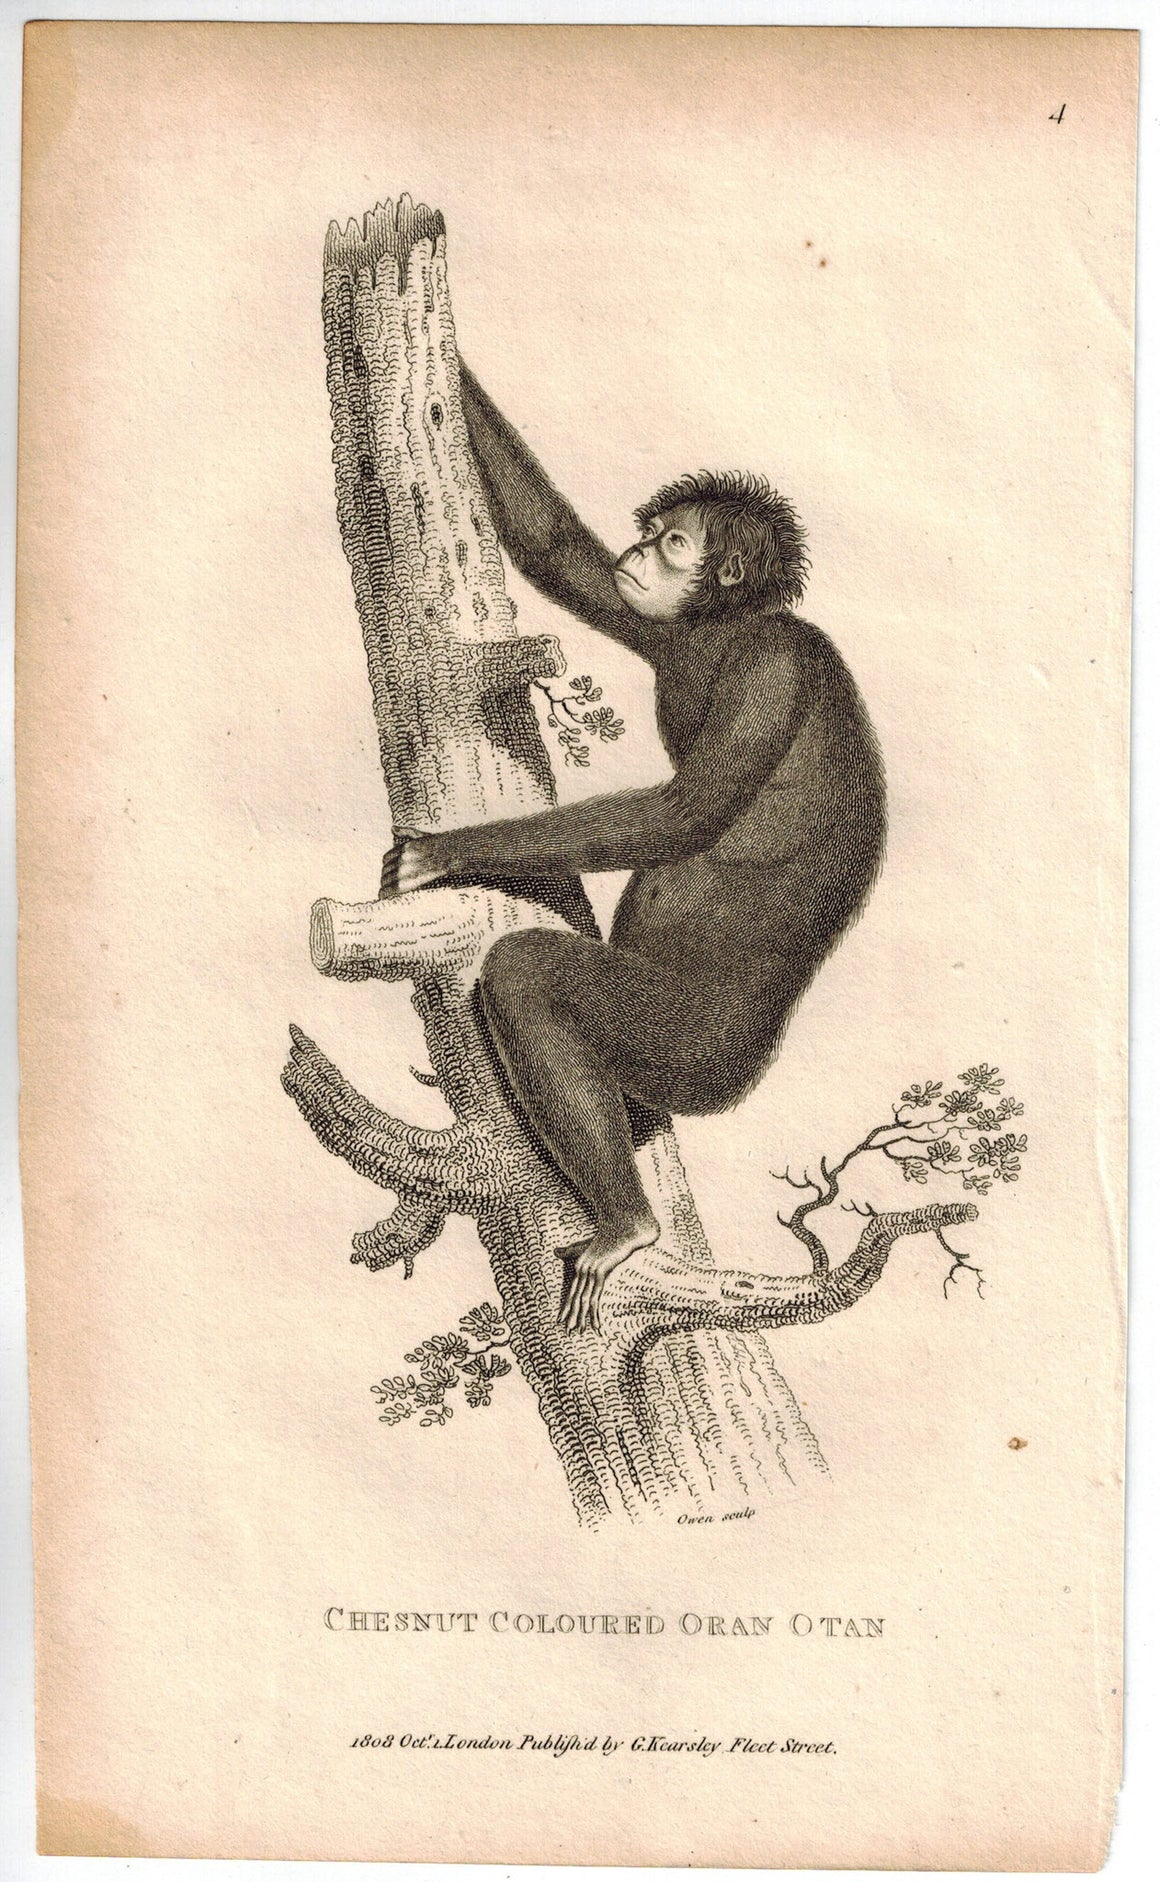 Chestnut Coloured Oran Otan (Orangutan) Print 1809 Original Engraving